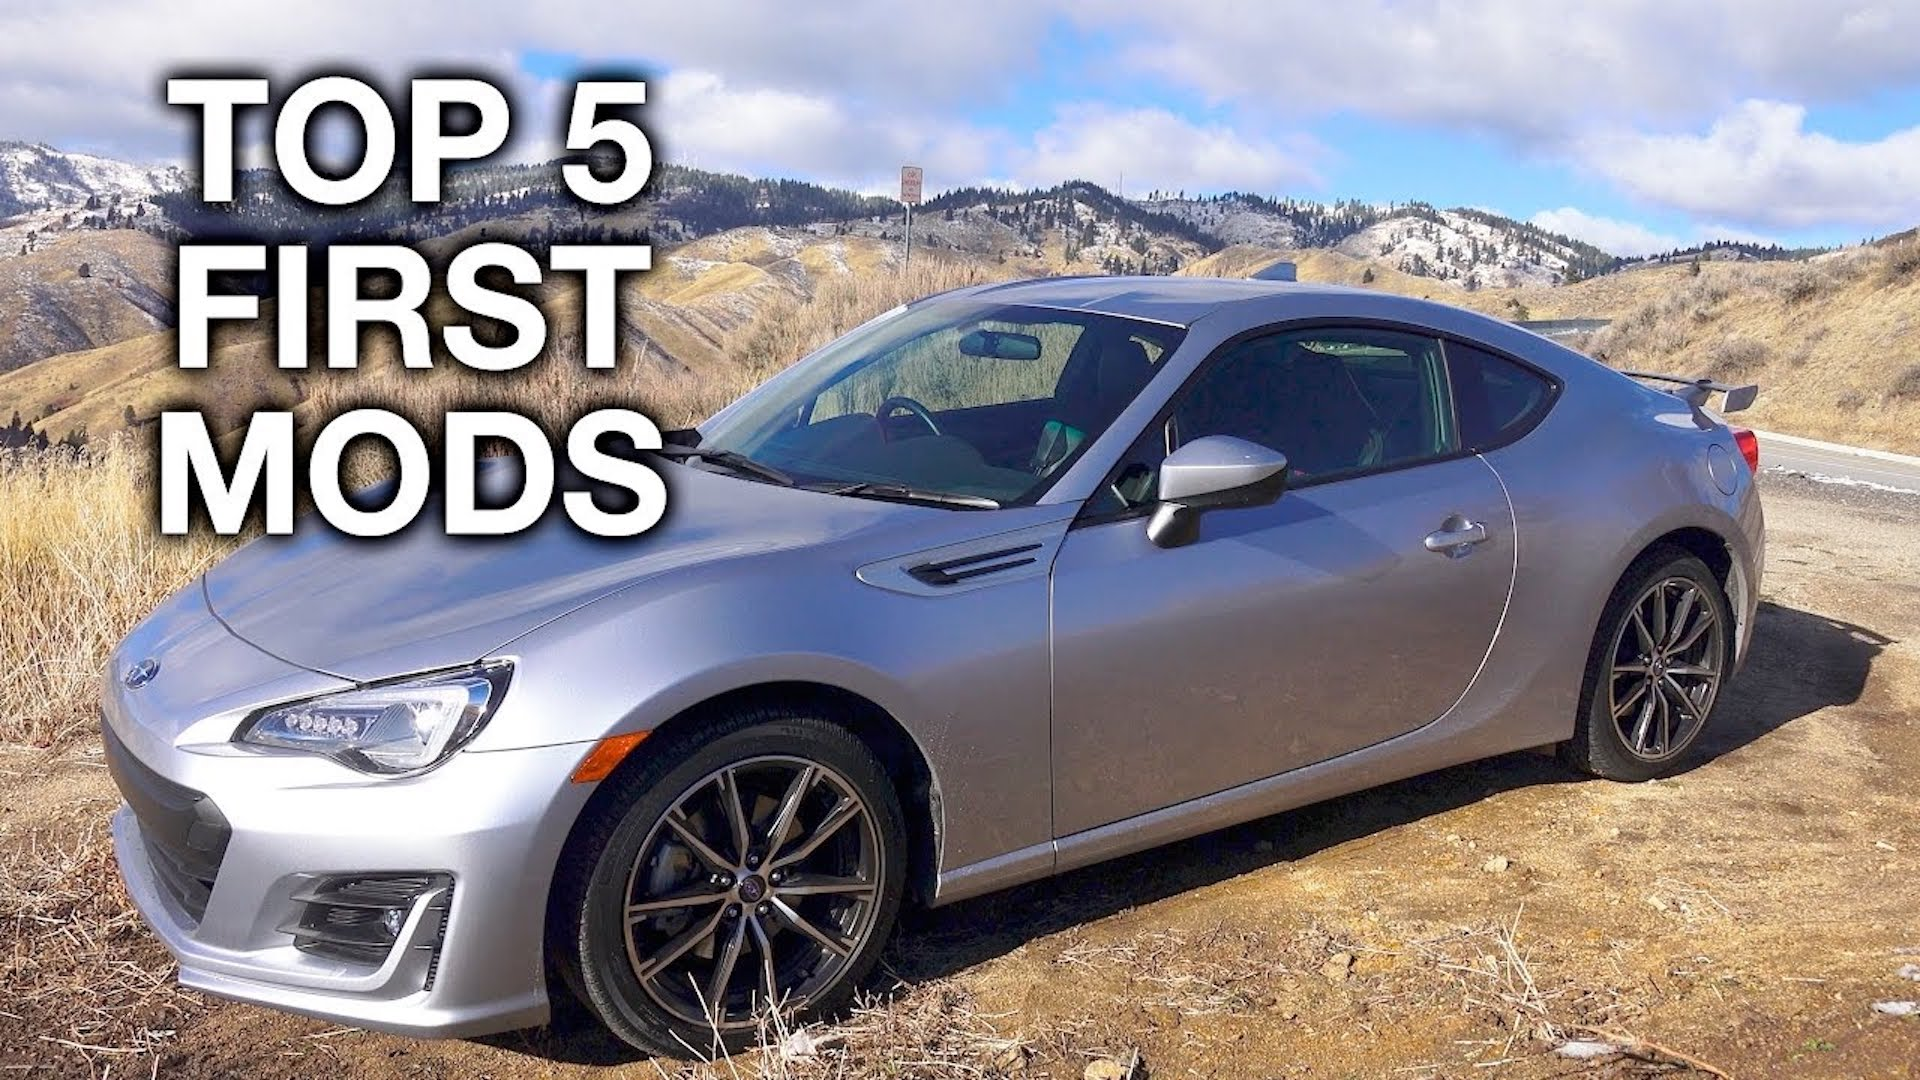 The five best basic modifications for your car